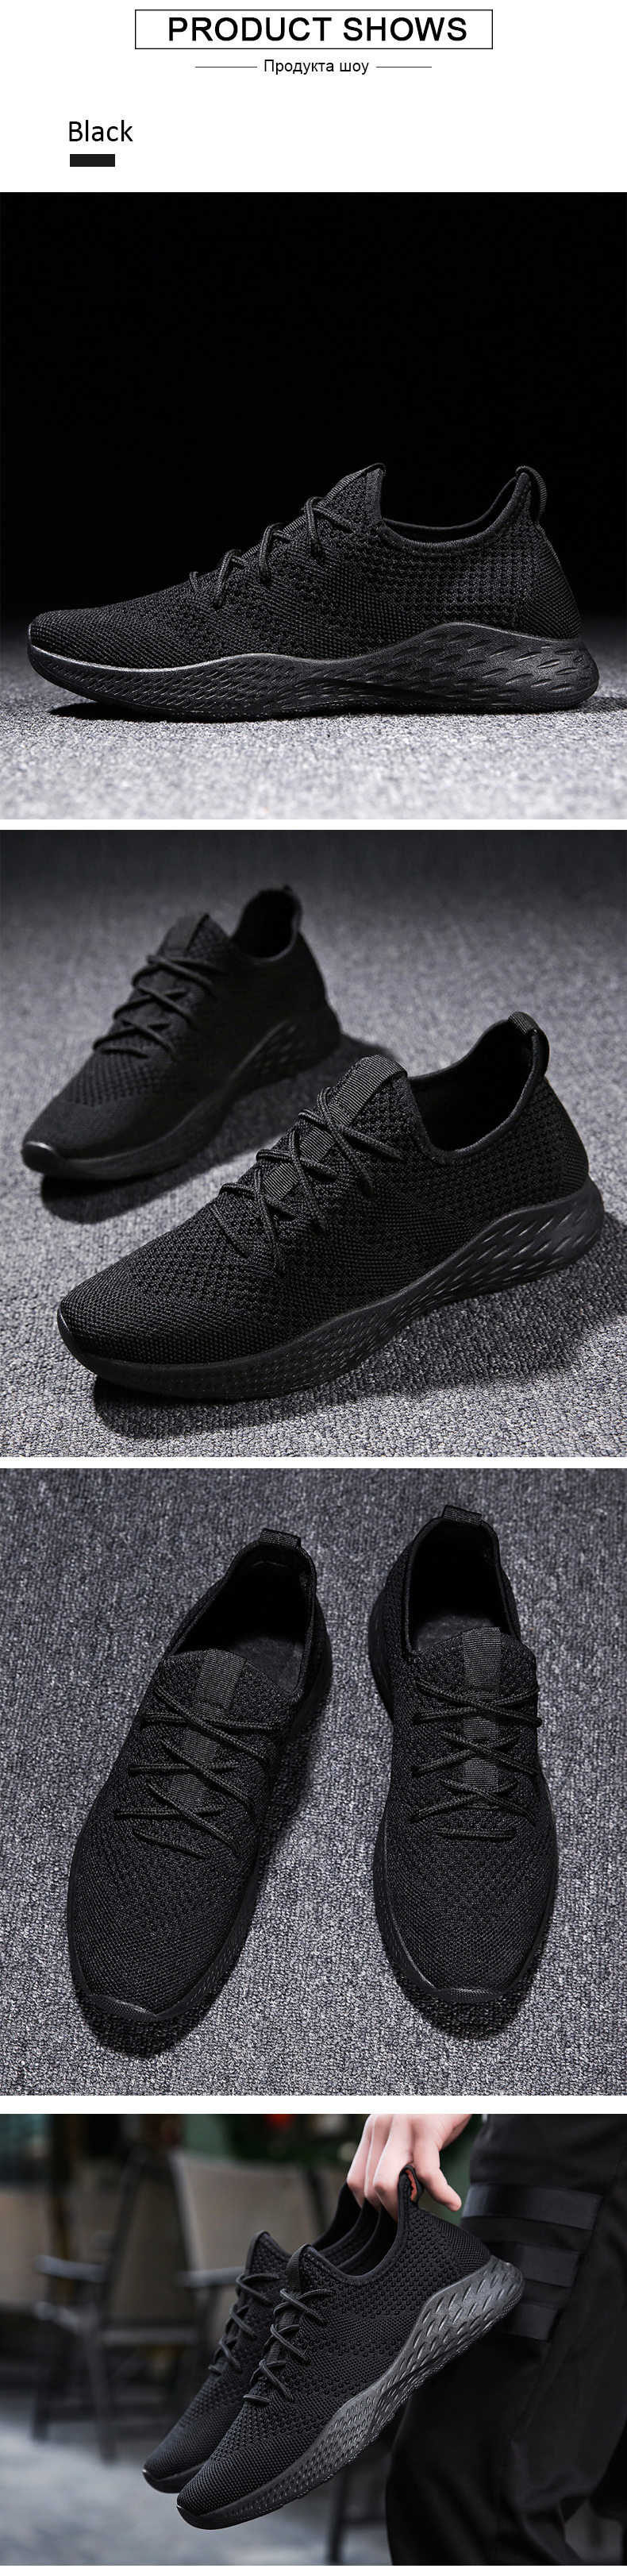 HTB17bNoavfsK1RjSszgq6yXzpXaa - Men Casual Shoes Men Sneakers Brand Men Shoes Male Mesh Flats Loafers Slip On Big Size Breathable Spring Autumn Winter Xammep